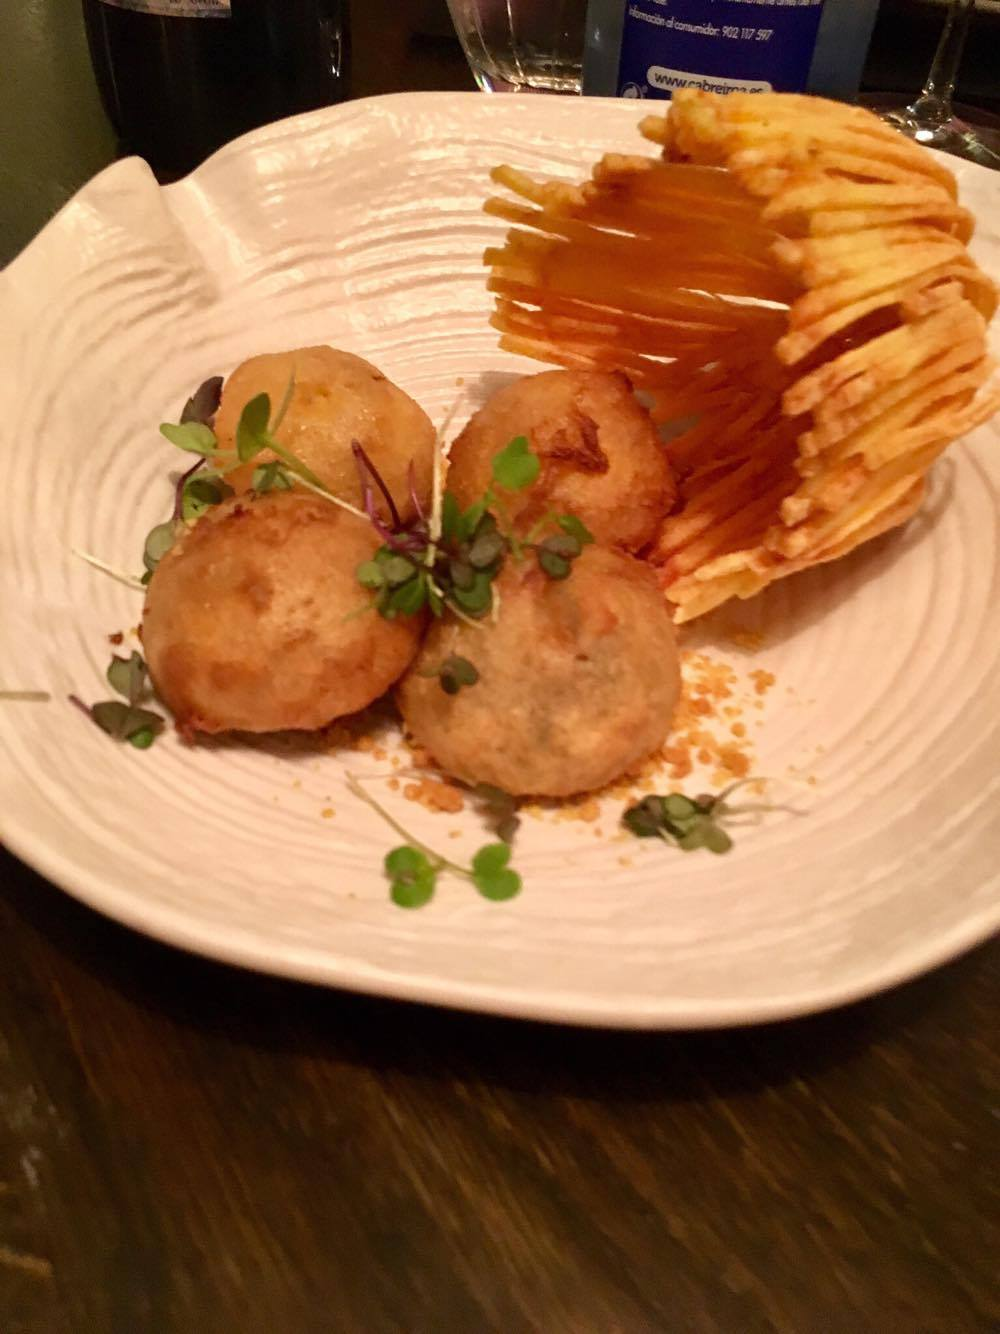 Chef's take on the omnipresent croquetas